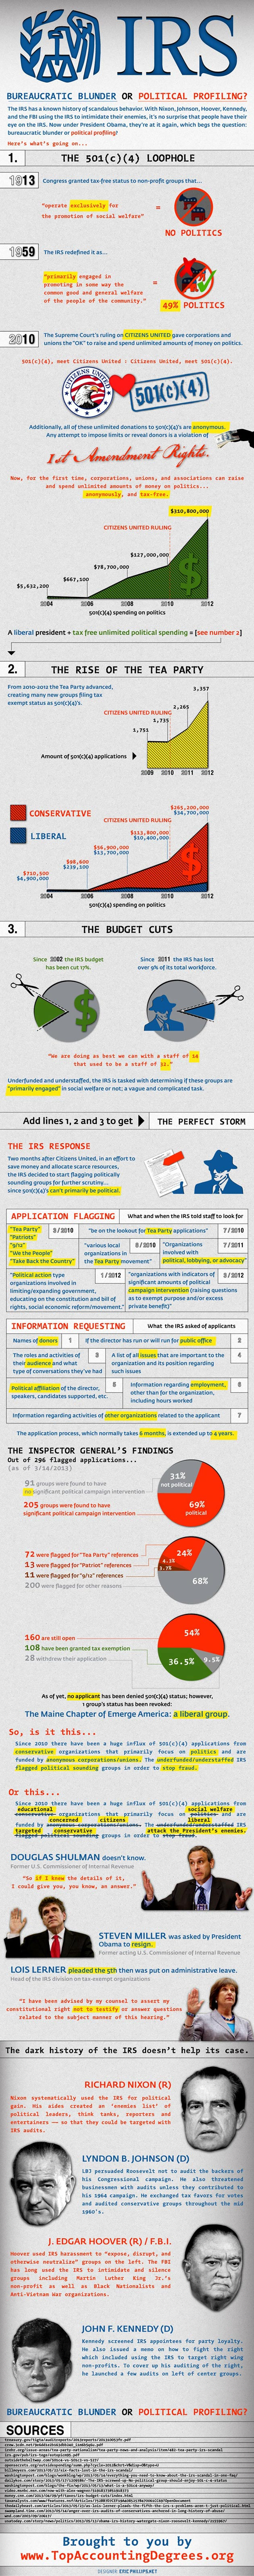 IRS Controversy Explained-Infographic